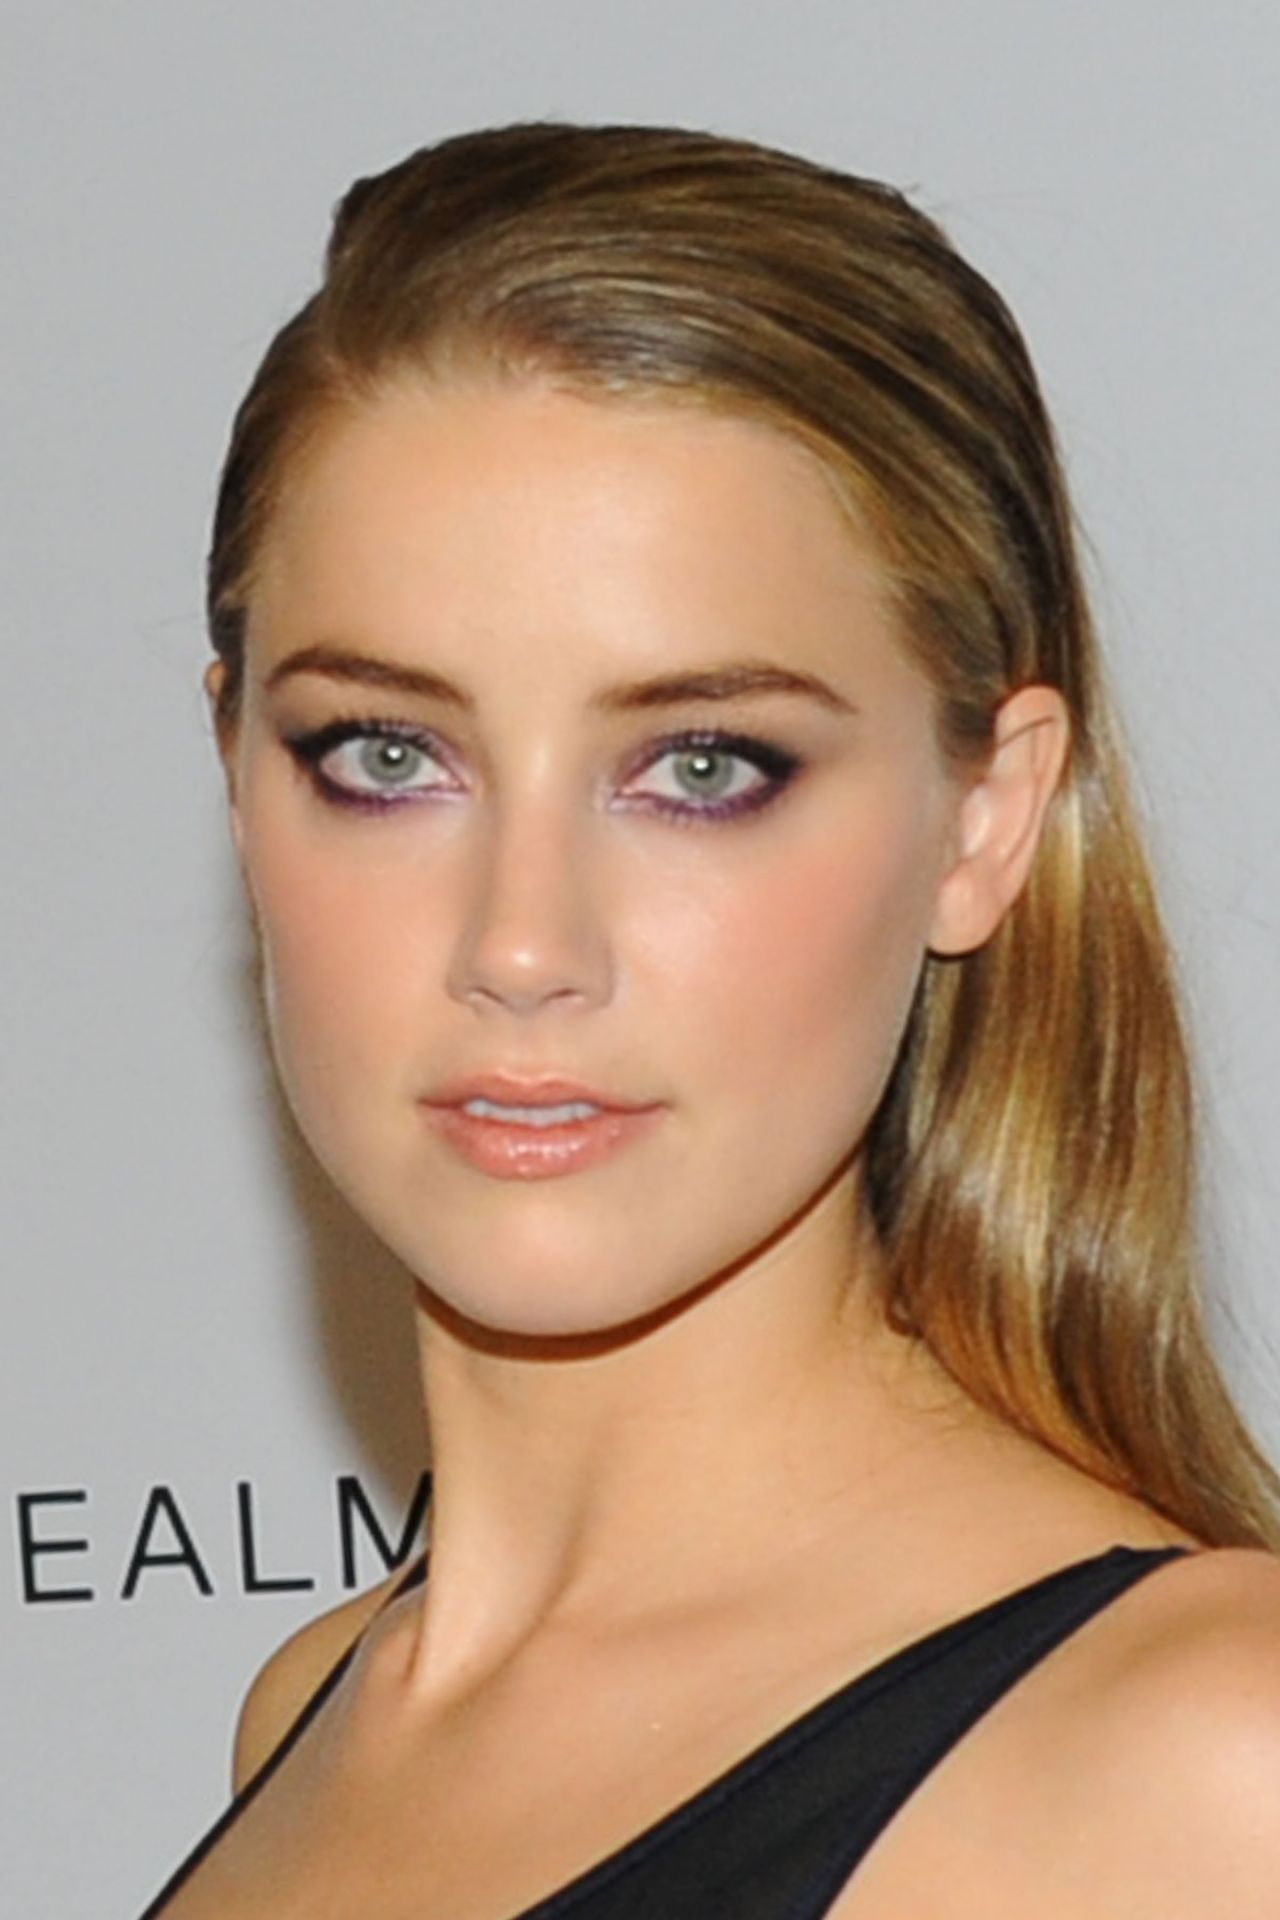 Calvin klein fragrance launch for reveal in new york city – sep 2014